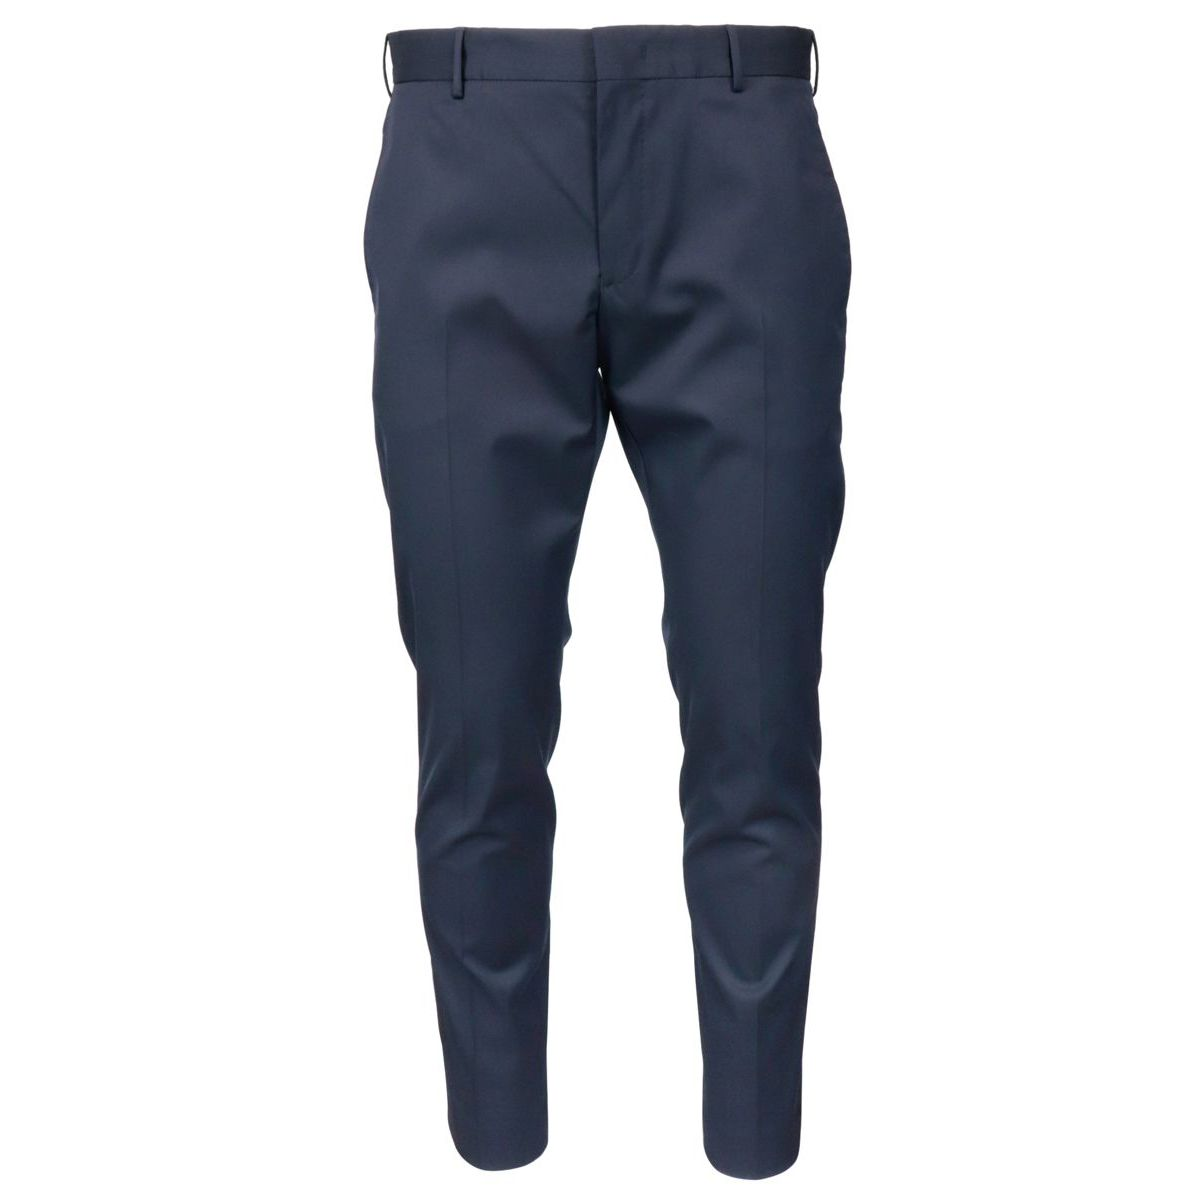 Wool blend skinny trousers with america pockets Navy PT TORINO